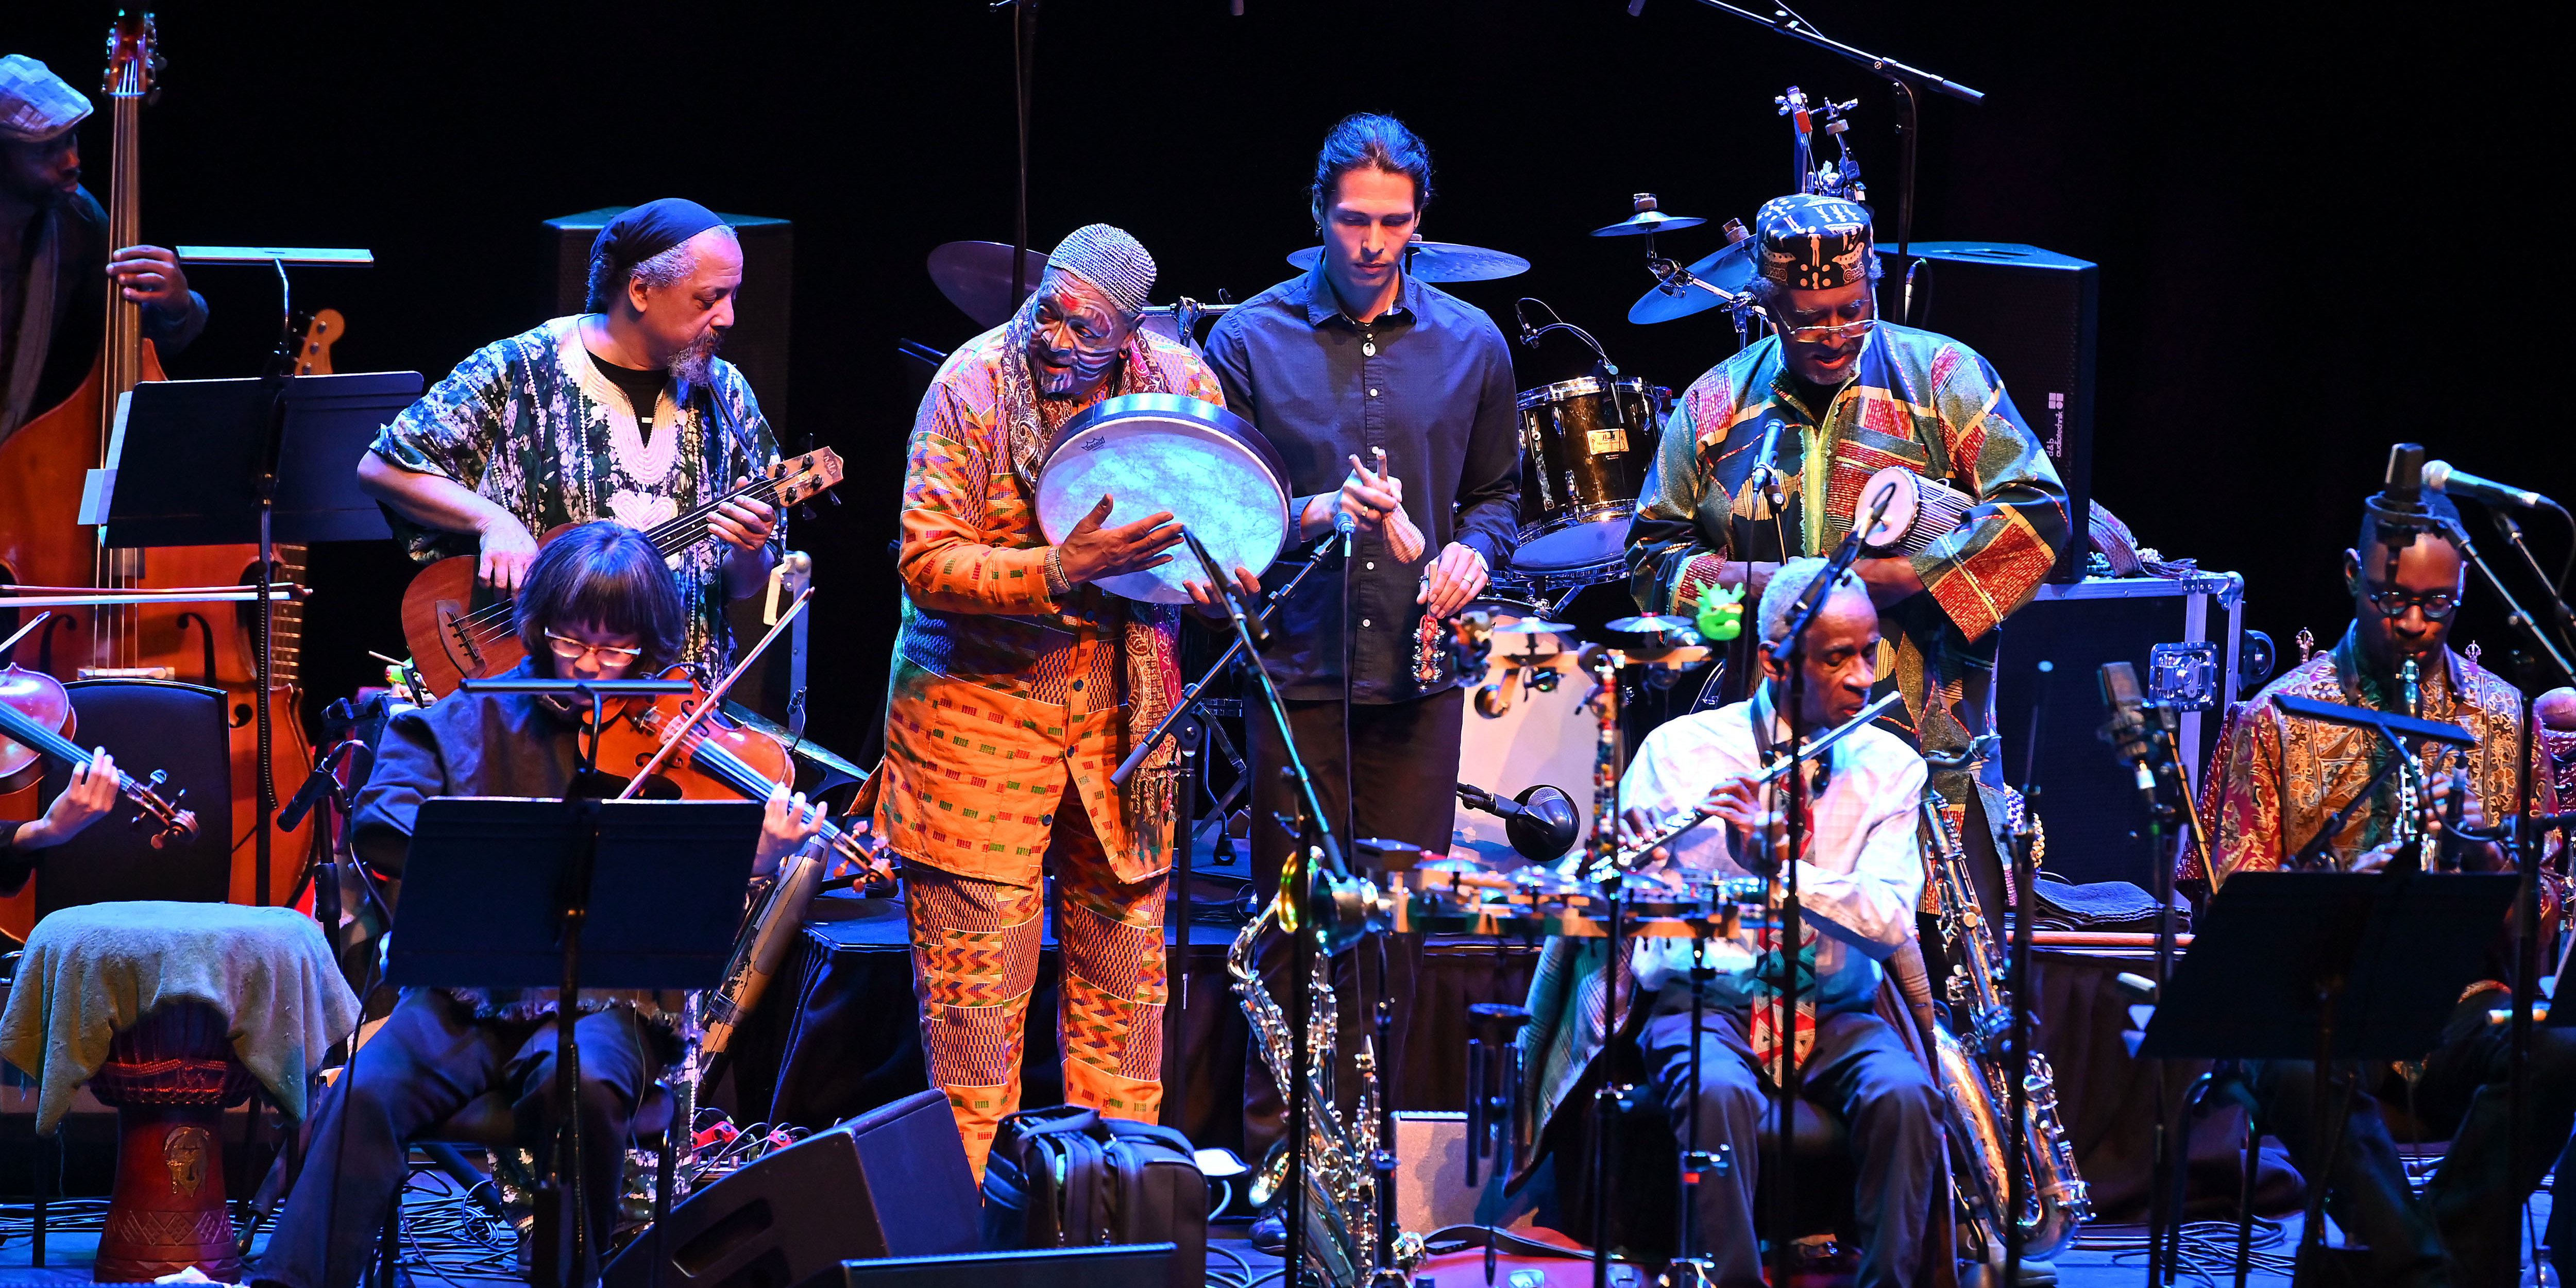 """FROM ITS FOUNDATION IN 1969, the Art Ensemble of Chicago was always more than """"jazz,"""" more than a quintet, and more than the sum of its parts. Like the slogan of the Association for the Advancement of Creative Musicians (AACM) from which it emerged, the group has been """"a power stronger than itself."""" Its flexible approaches to ensemble-building and to ways of thinking collectively have taken its musicians from early days, scraping it together in post–May '68 Paris, to sold-out gigs in concert halls around the world. While predecessors such as Eric Dolphy and John Coltrane had played on an array"""